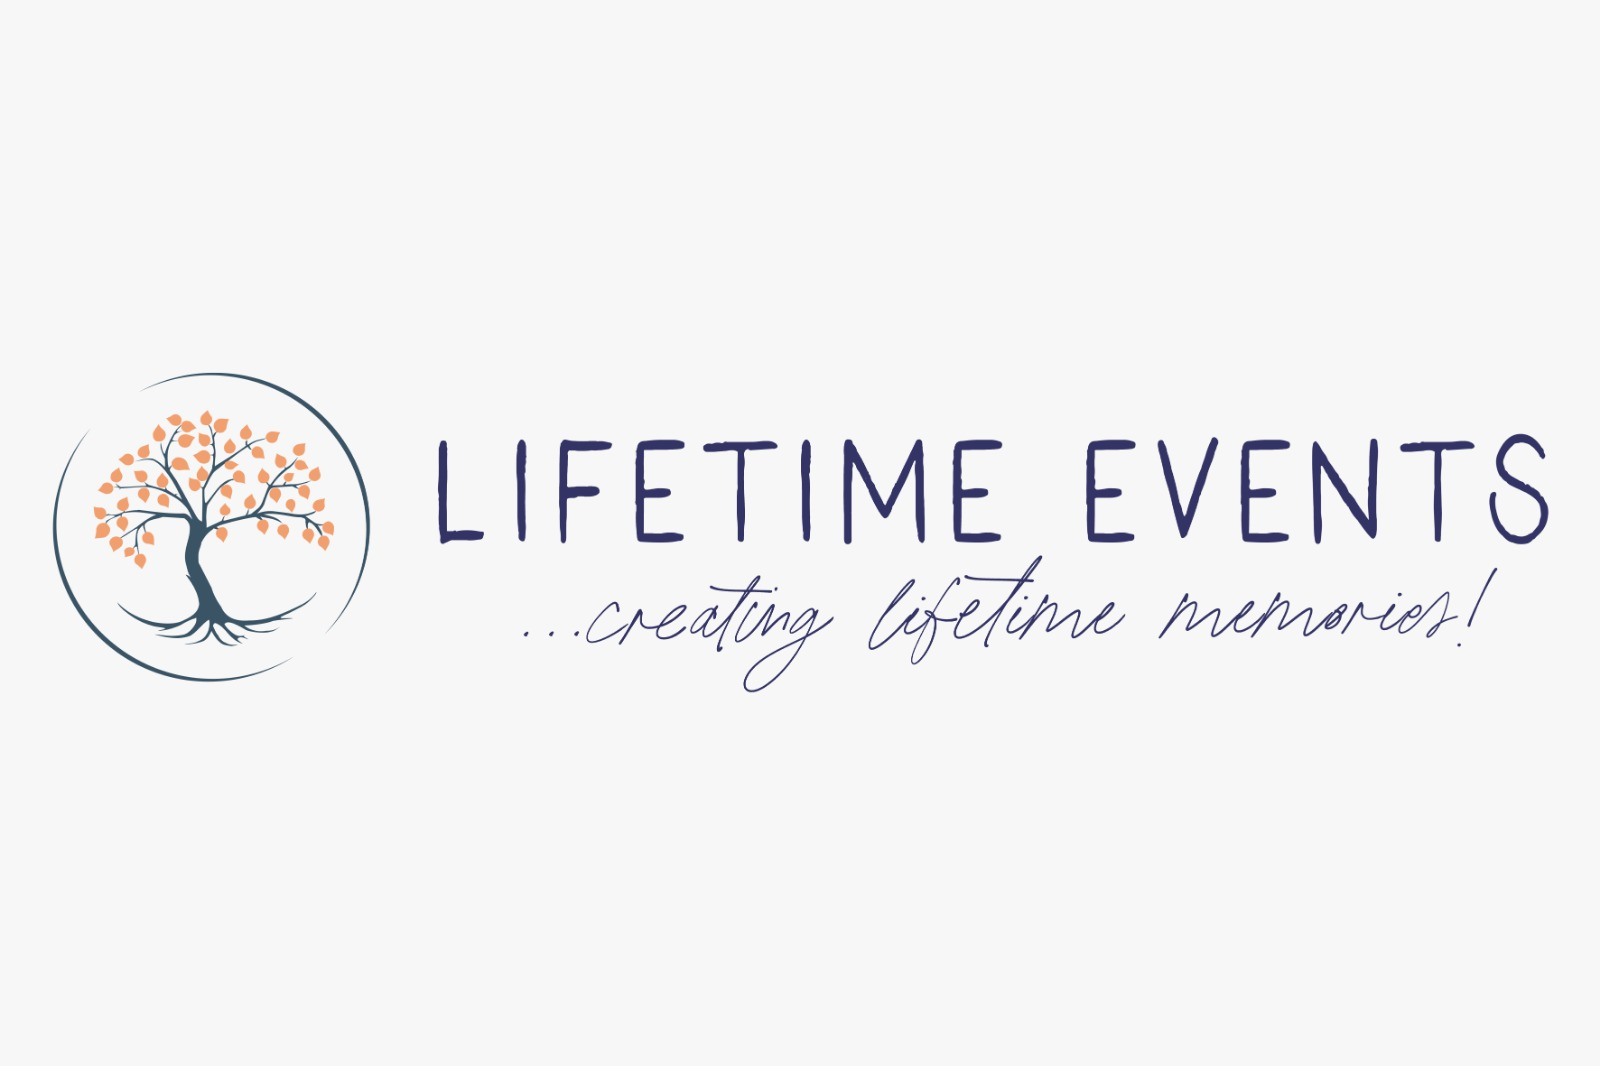 lifetime events mallorca